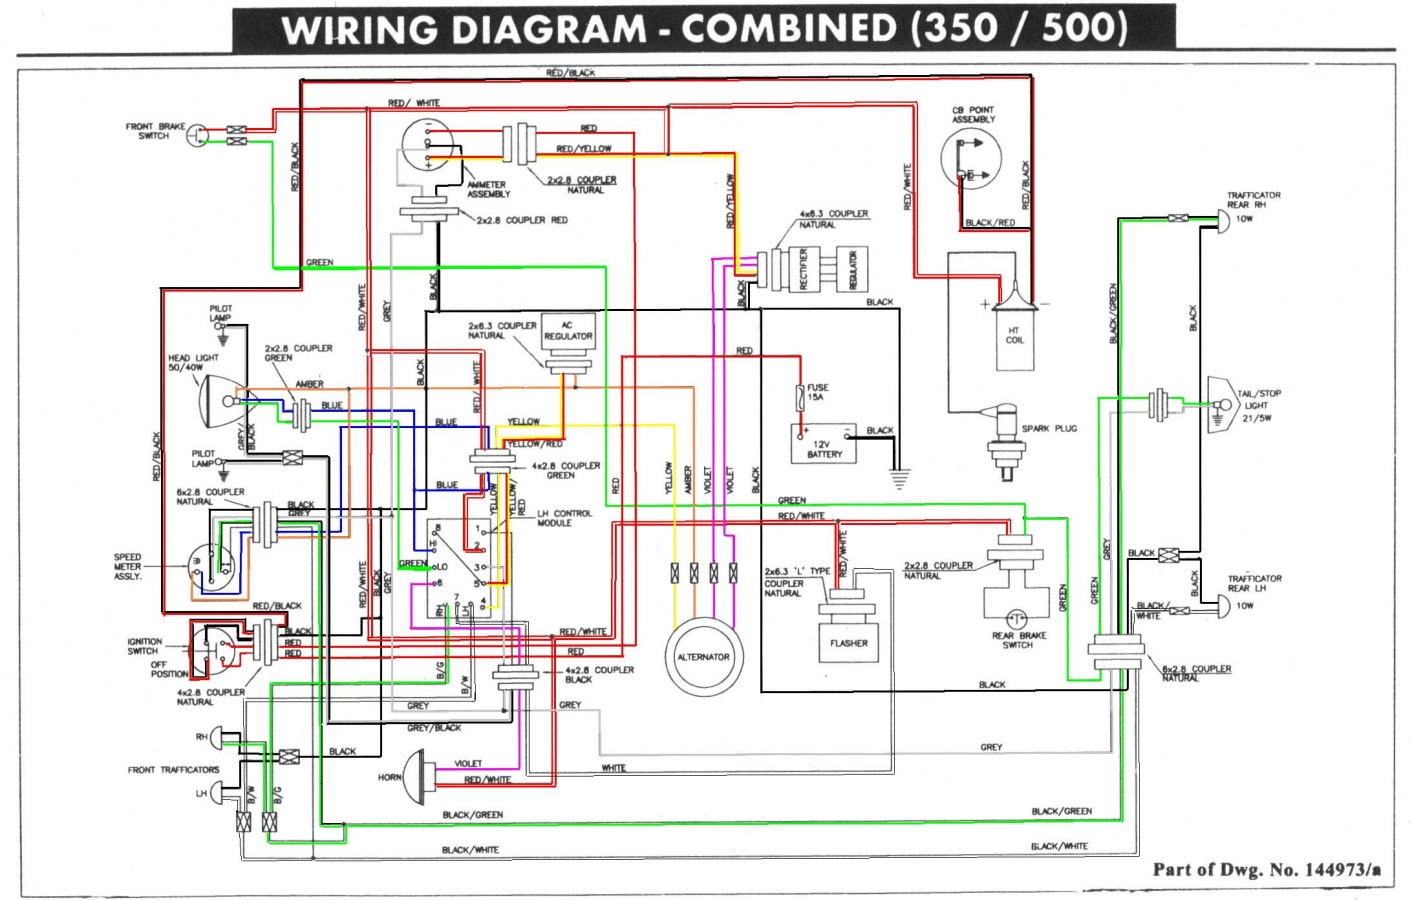 diagrams 875667 royal wiring diagrams royal enfield wiring dragster wiring diagram at couponss.co